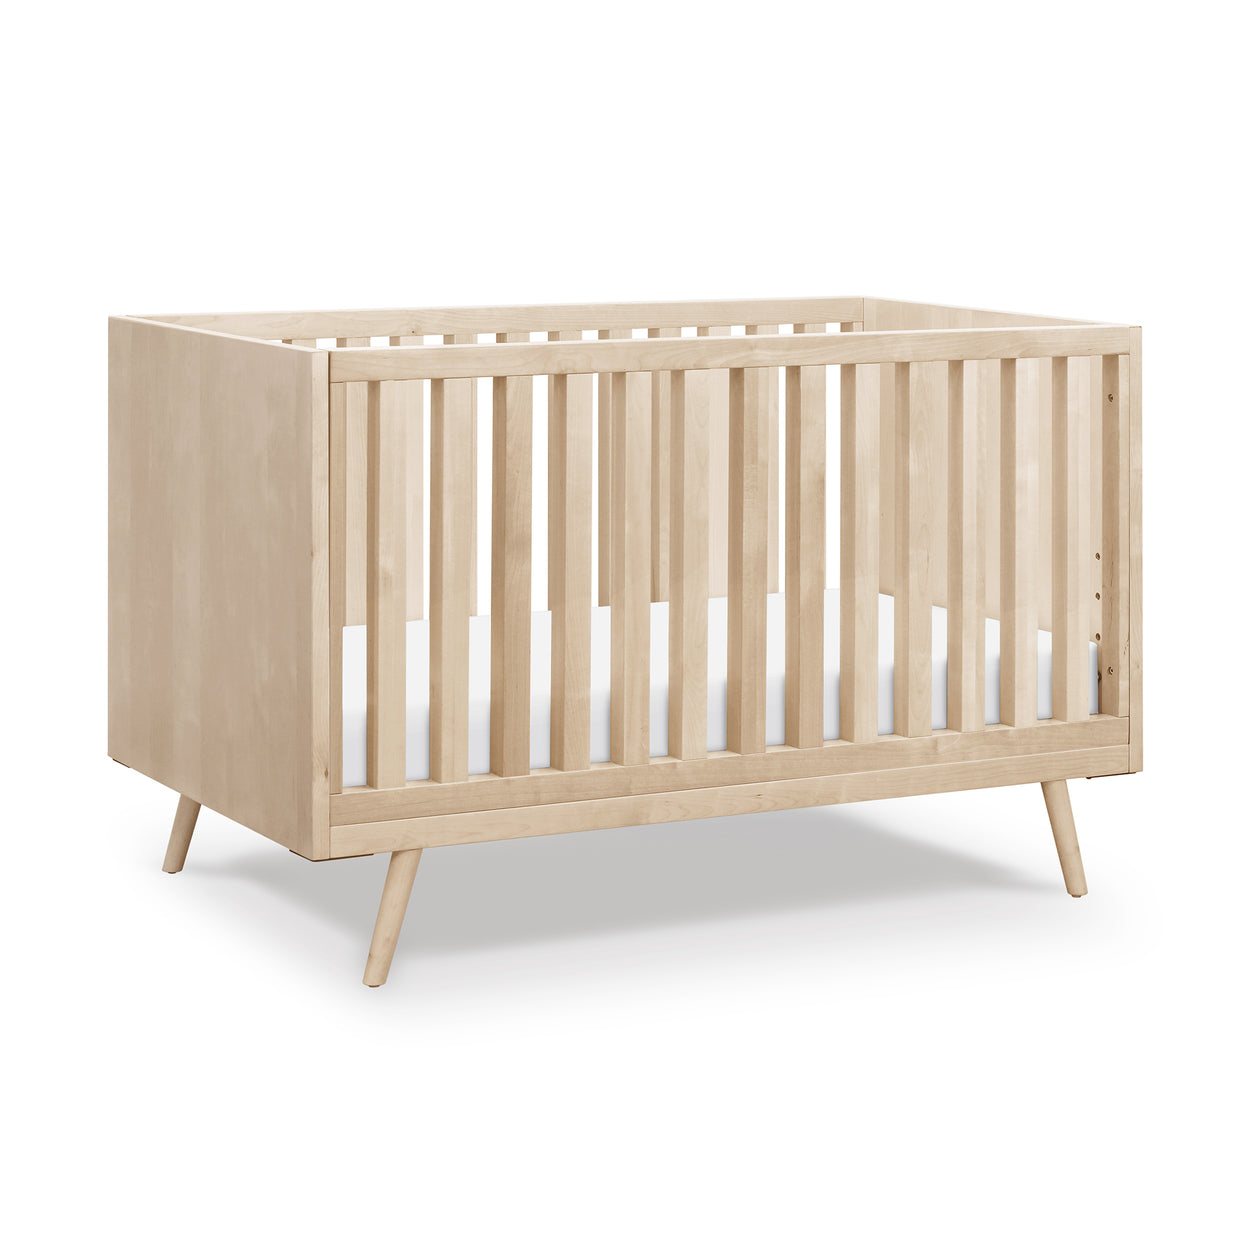 Nifty Timber Cot in Birch - Pre-order